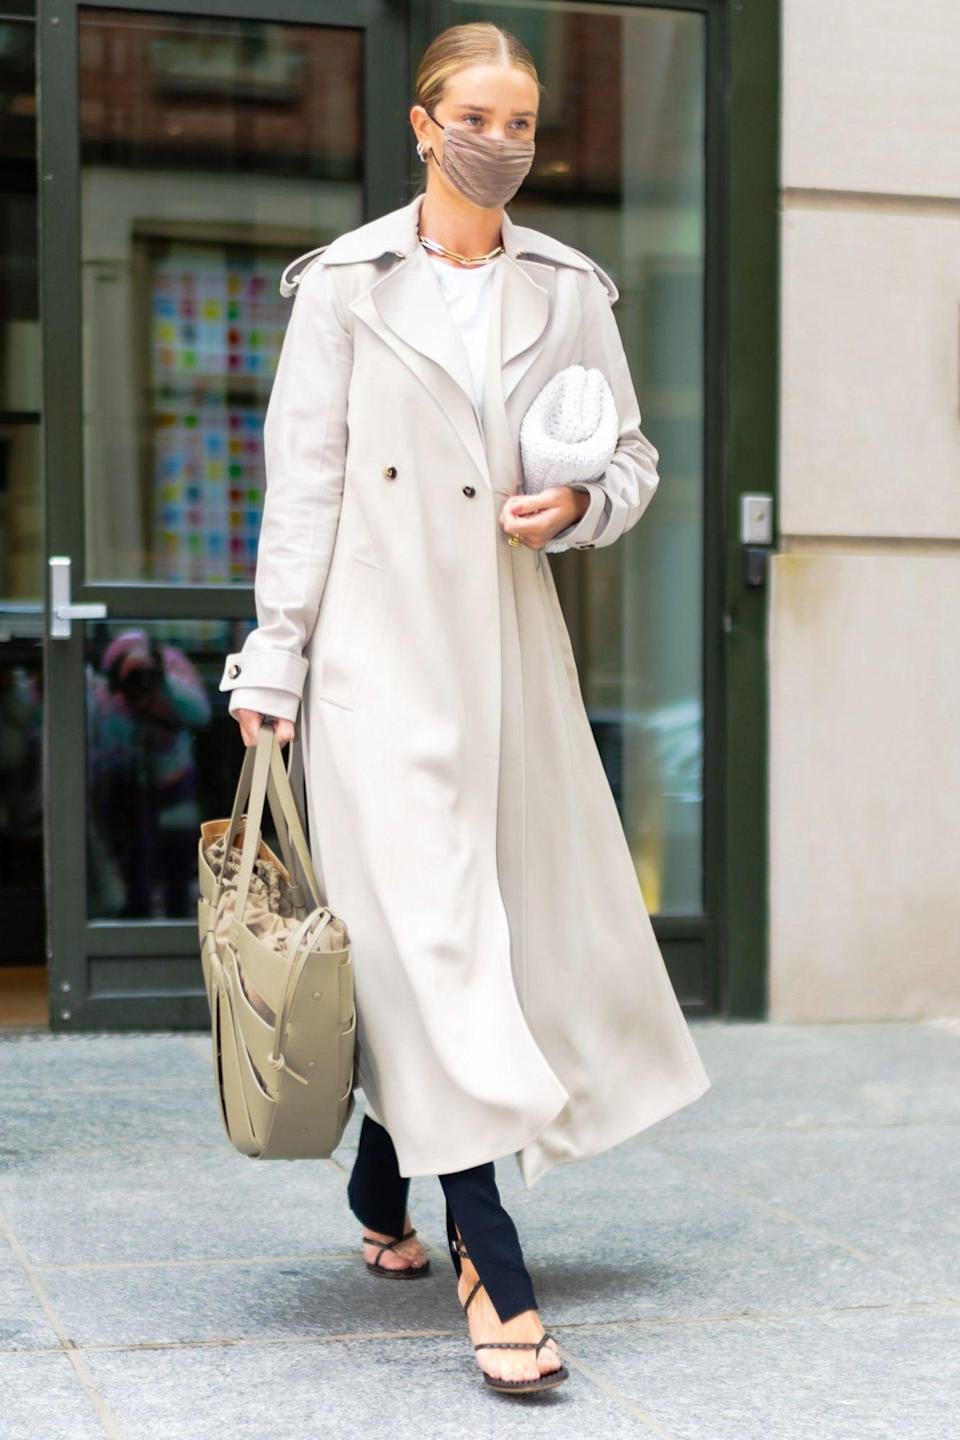 <p>Rosie Huntington-Whiteley leaves a building in New York City's SoHo neighborhood on Tuesday.</p>